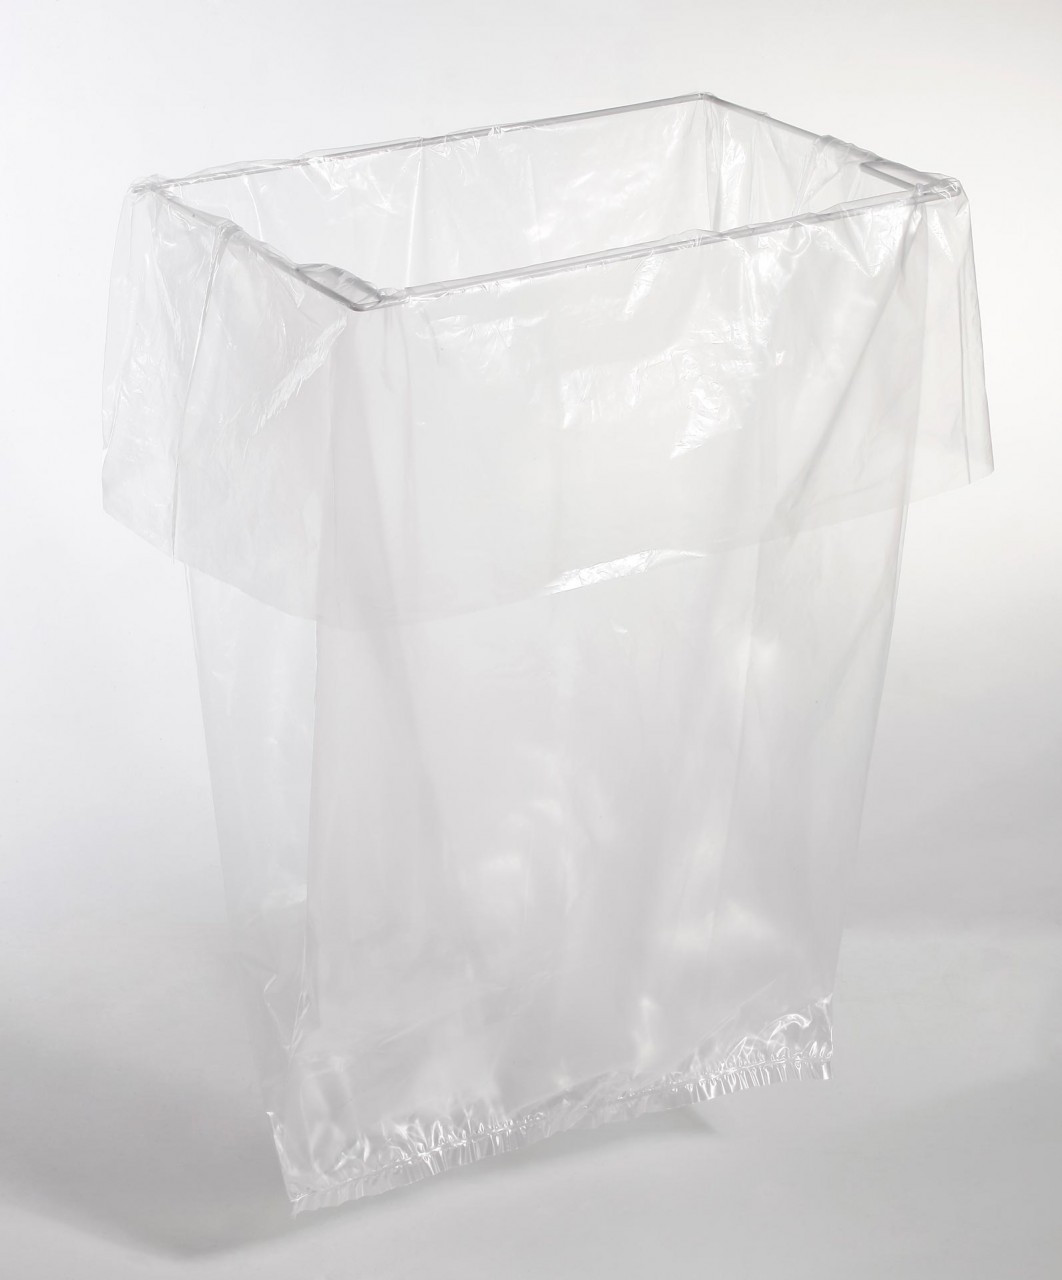 Dahle 20708 140-160 Litre Waste Bags Suits Models 405/406/415/416 (Pack of 10)